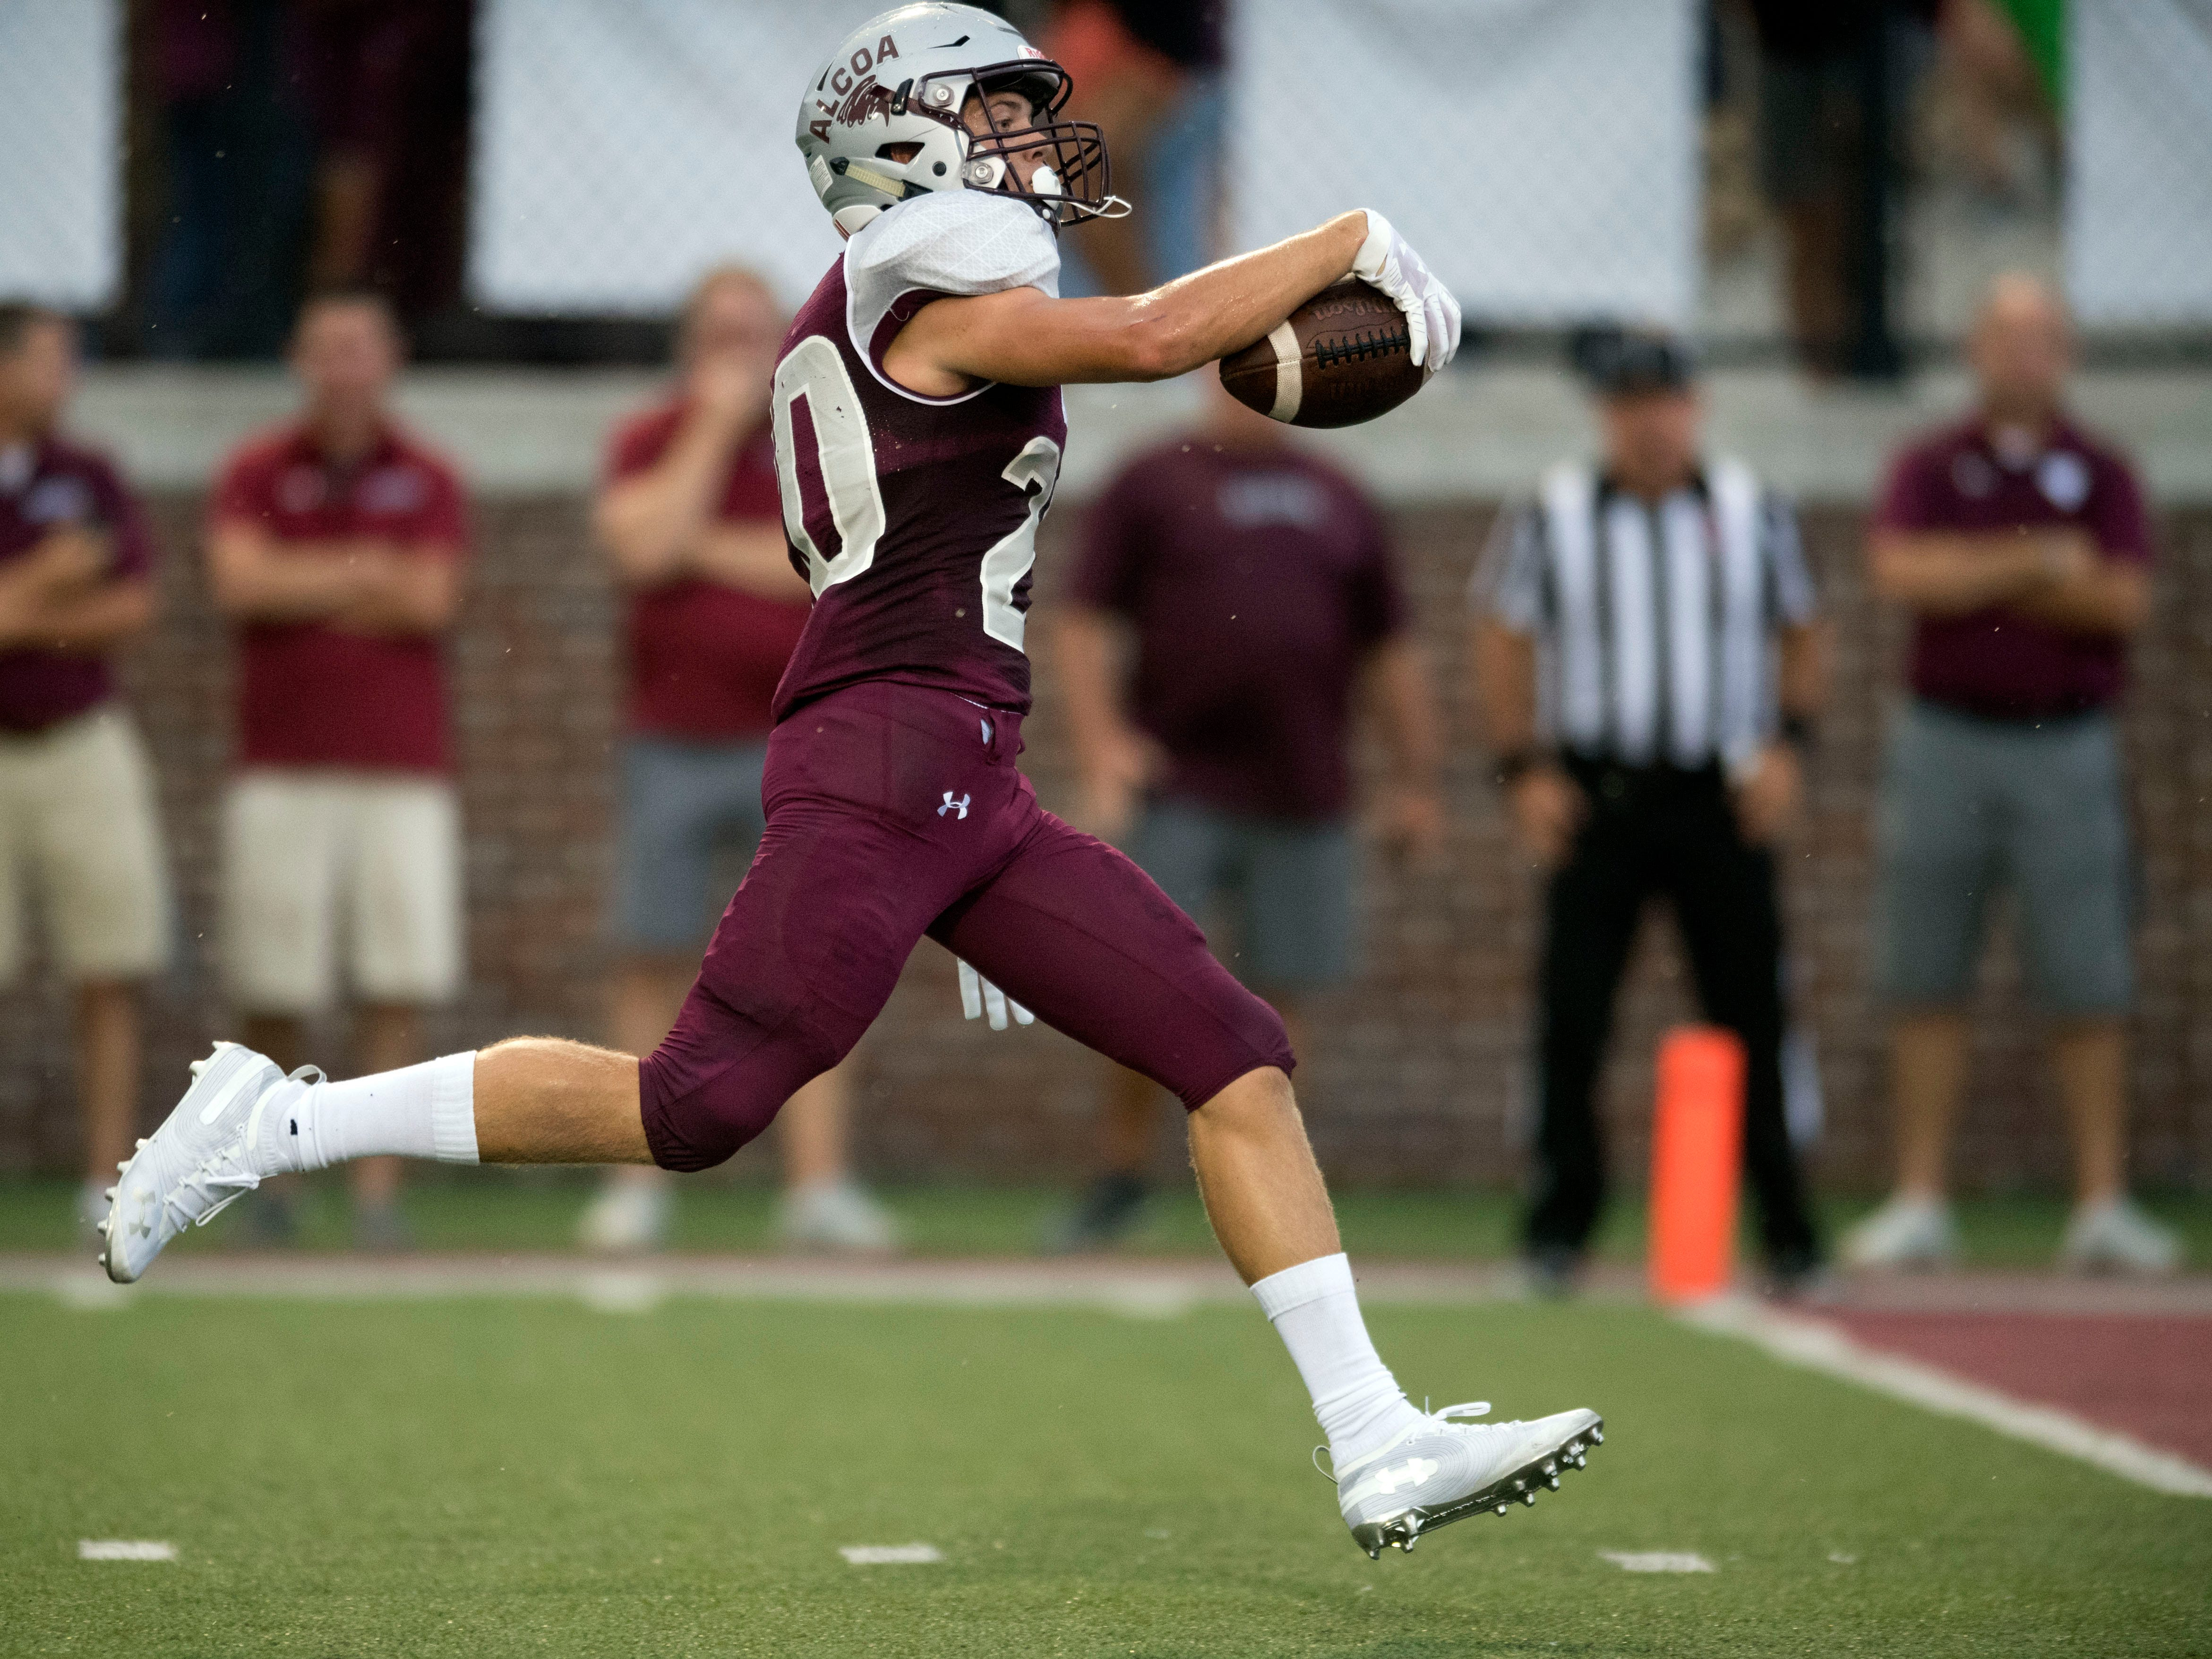 Alcoa's Tyler Boyd (20) runs the ball in for a touchdown in the football game against Grace Christian Academy on Thursday, August 16, 2018.